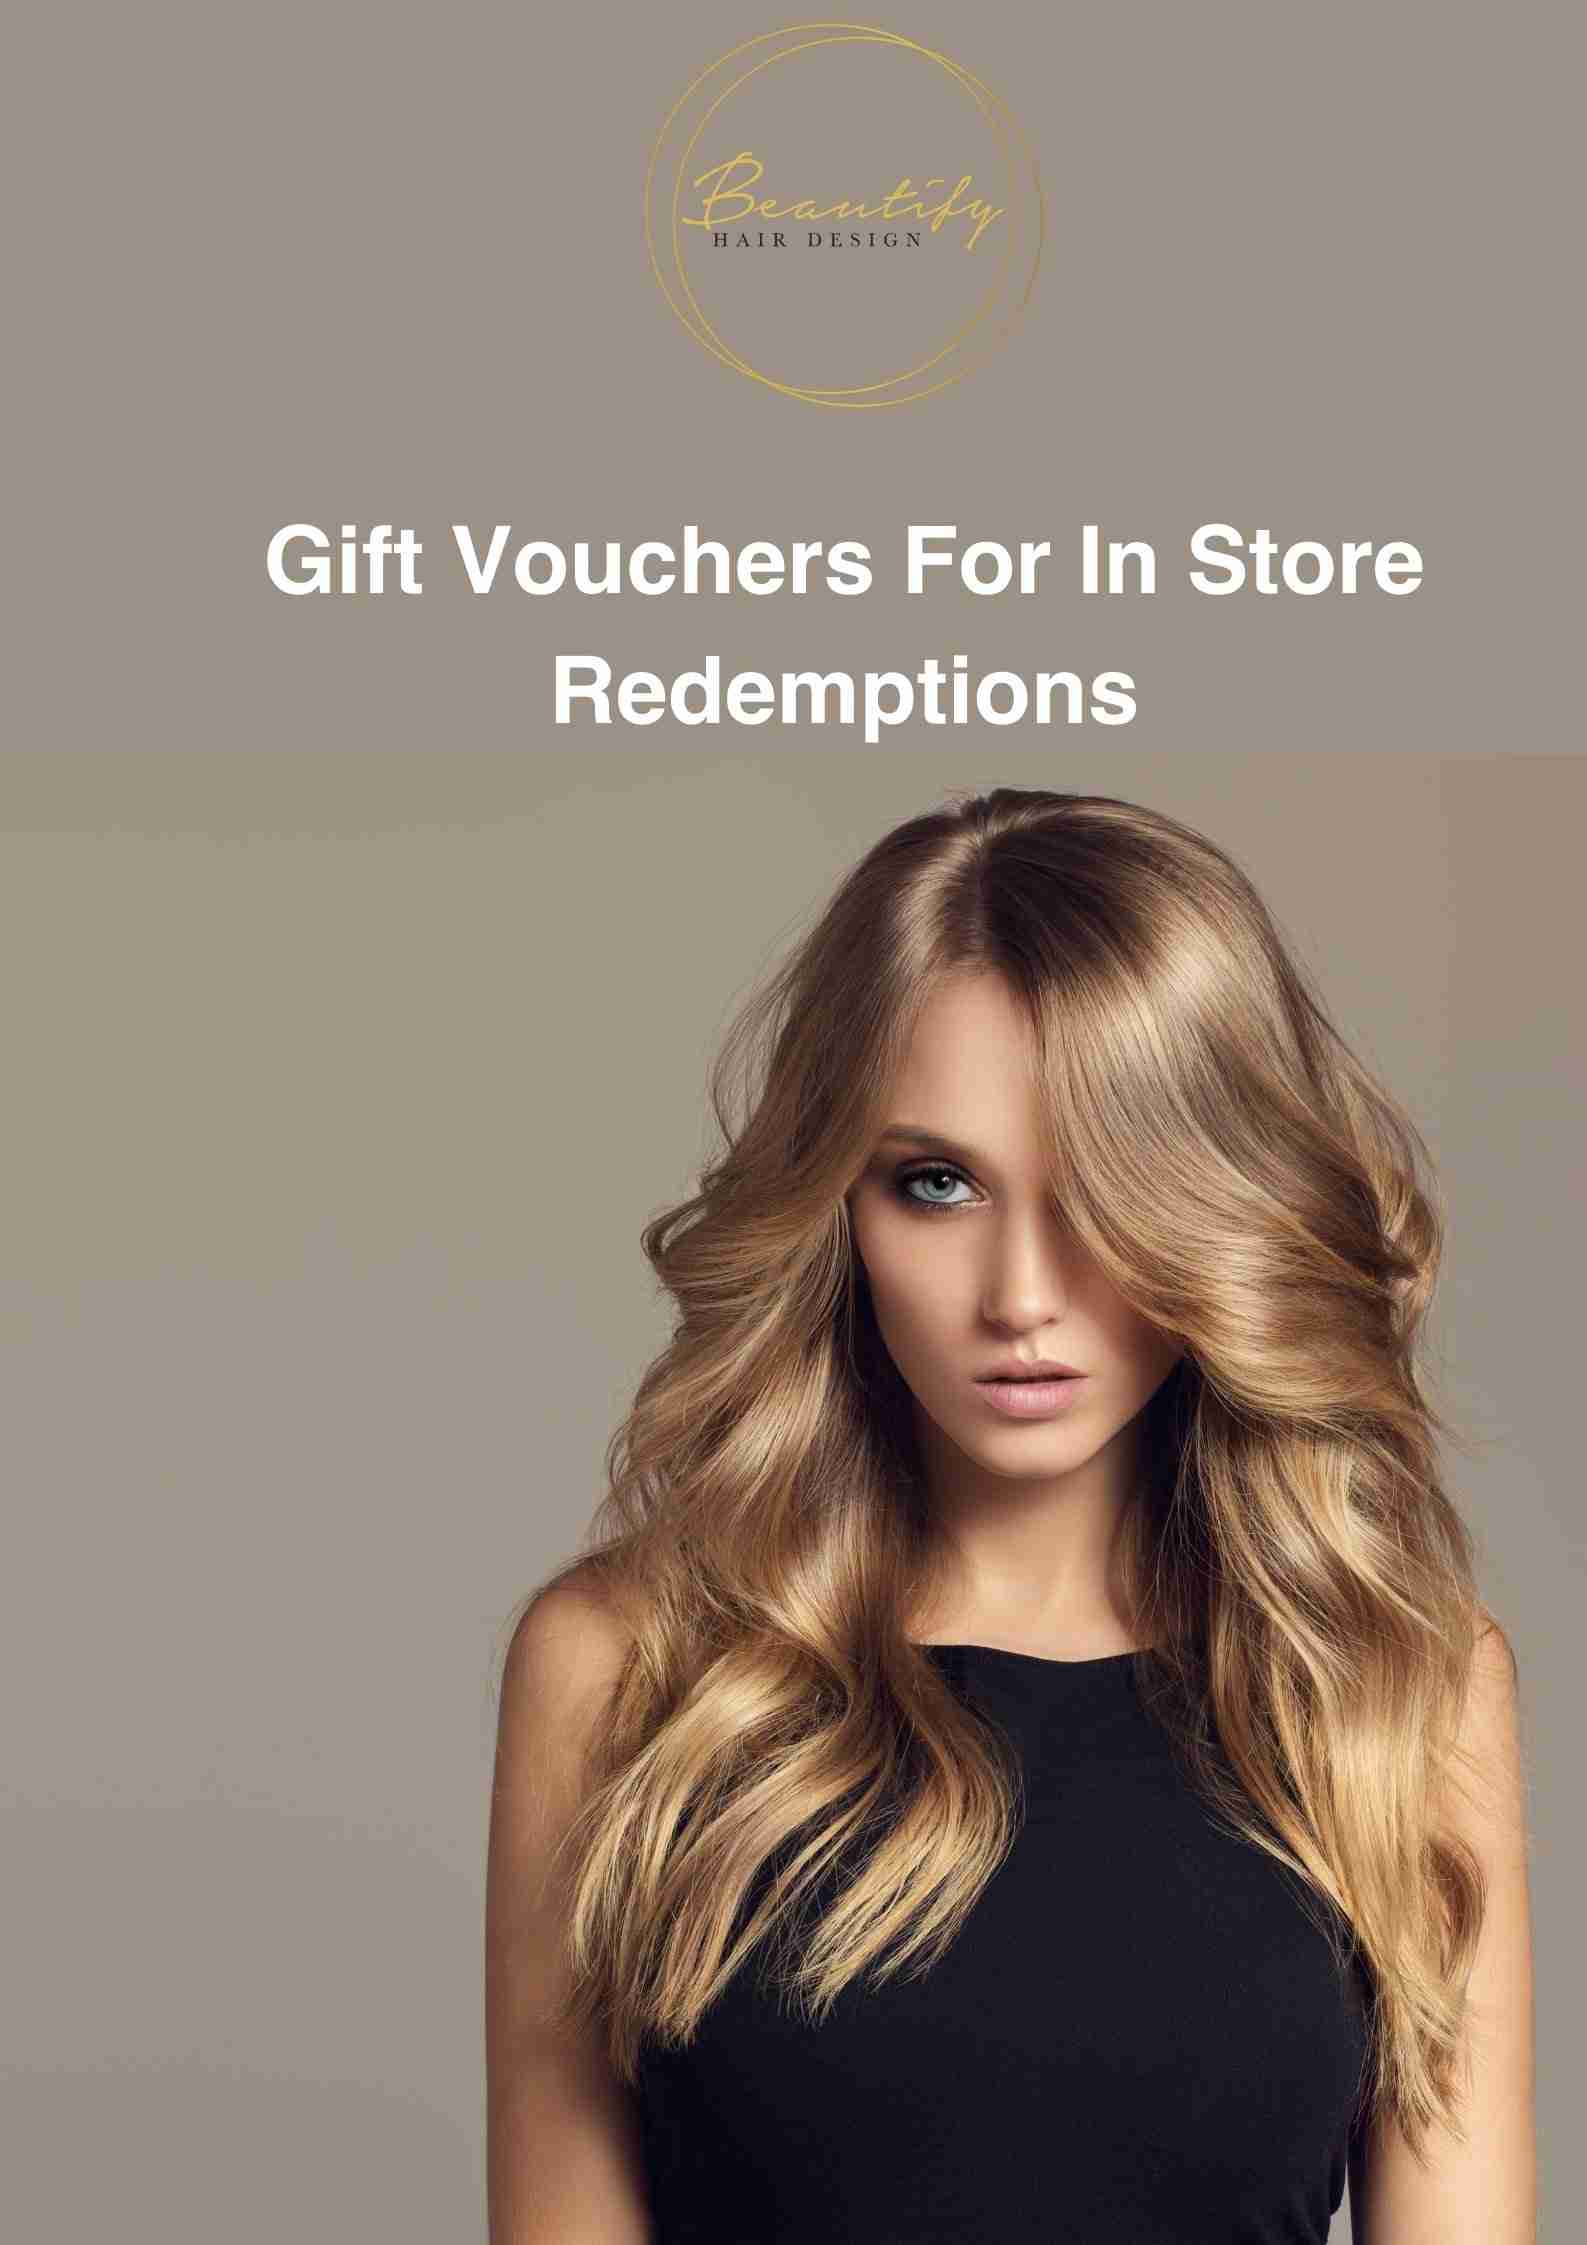 Gift Vouchers For In Store Redemption